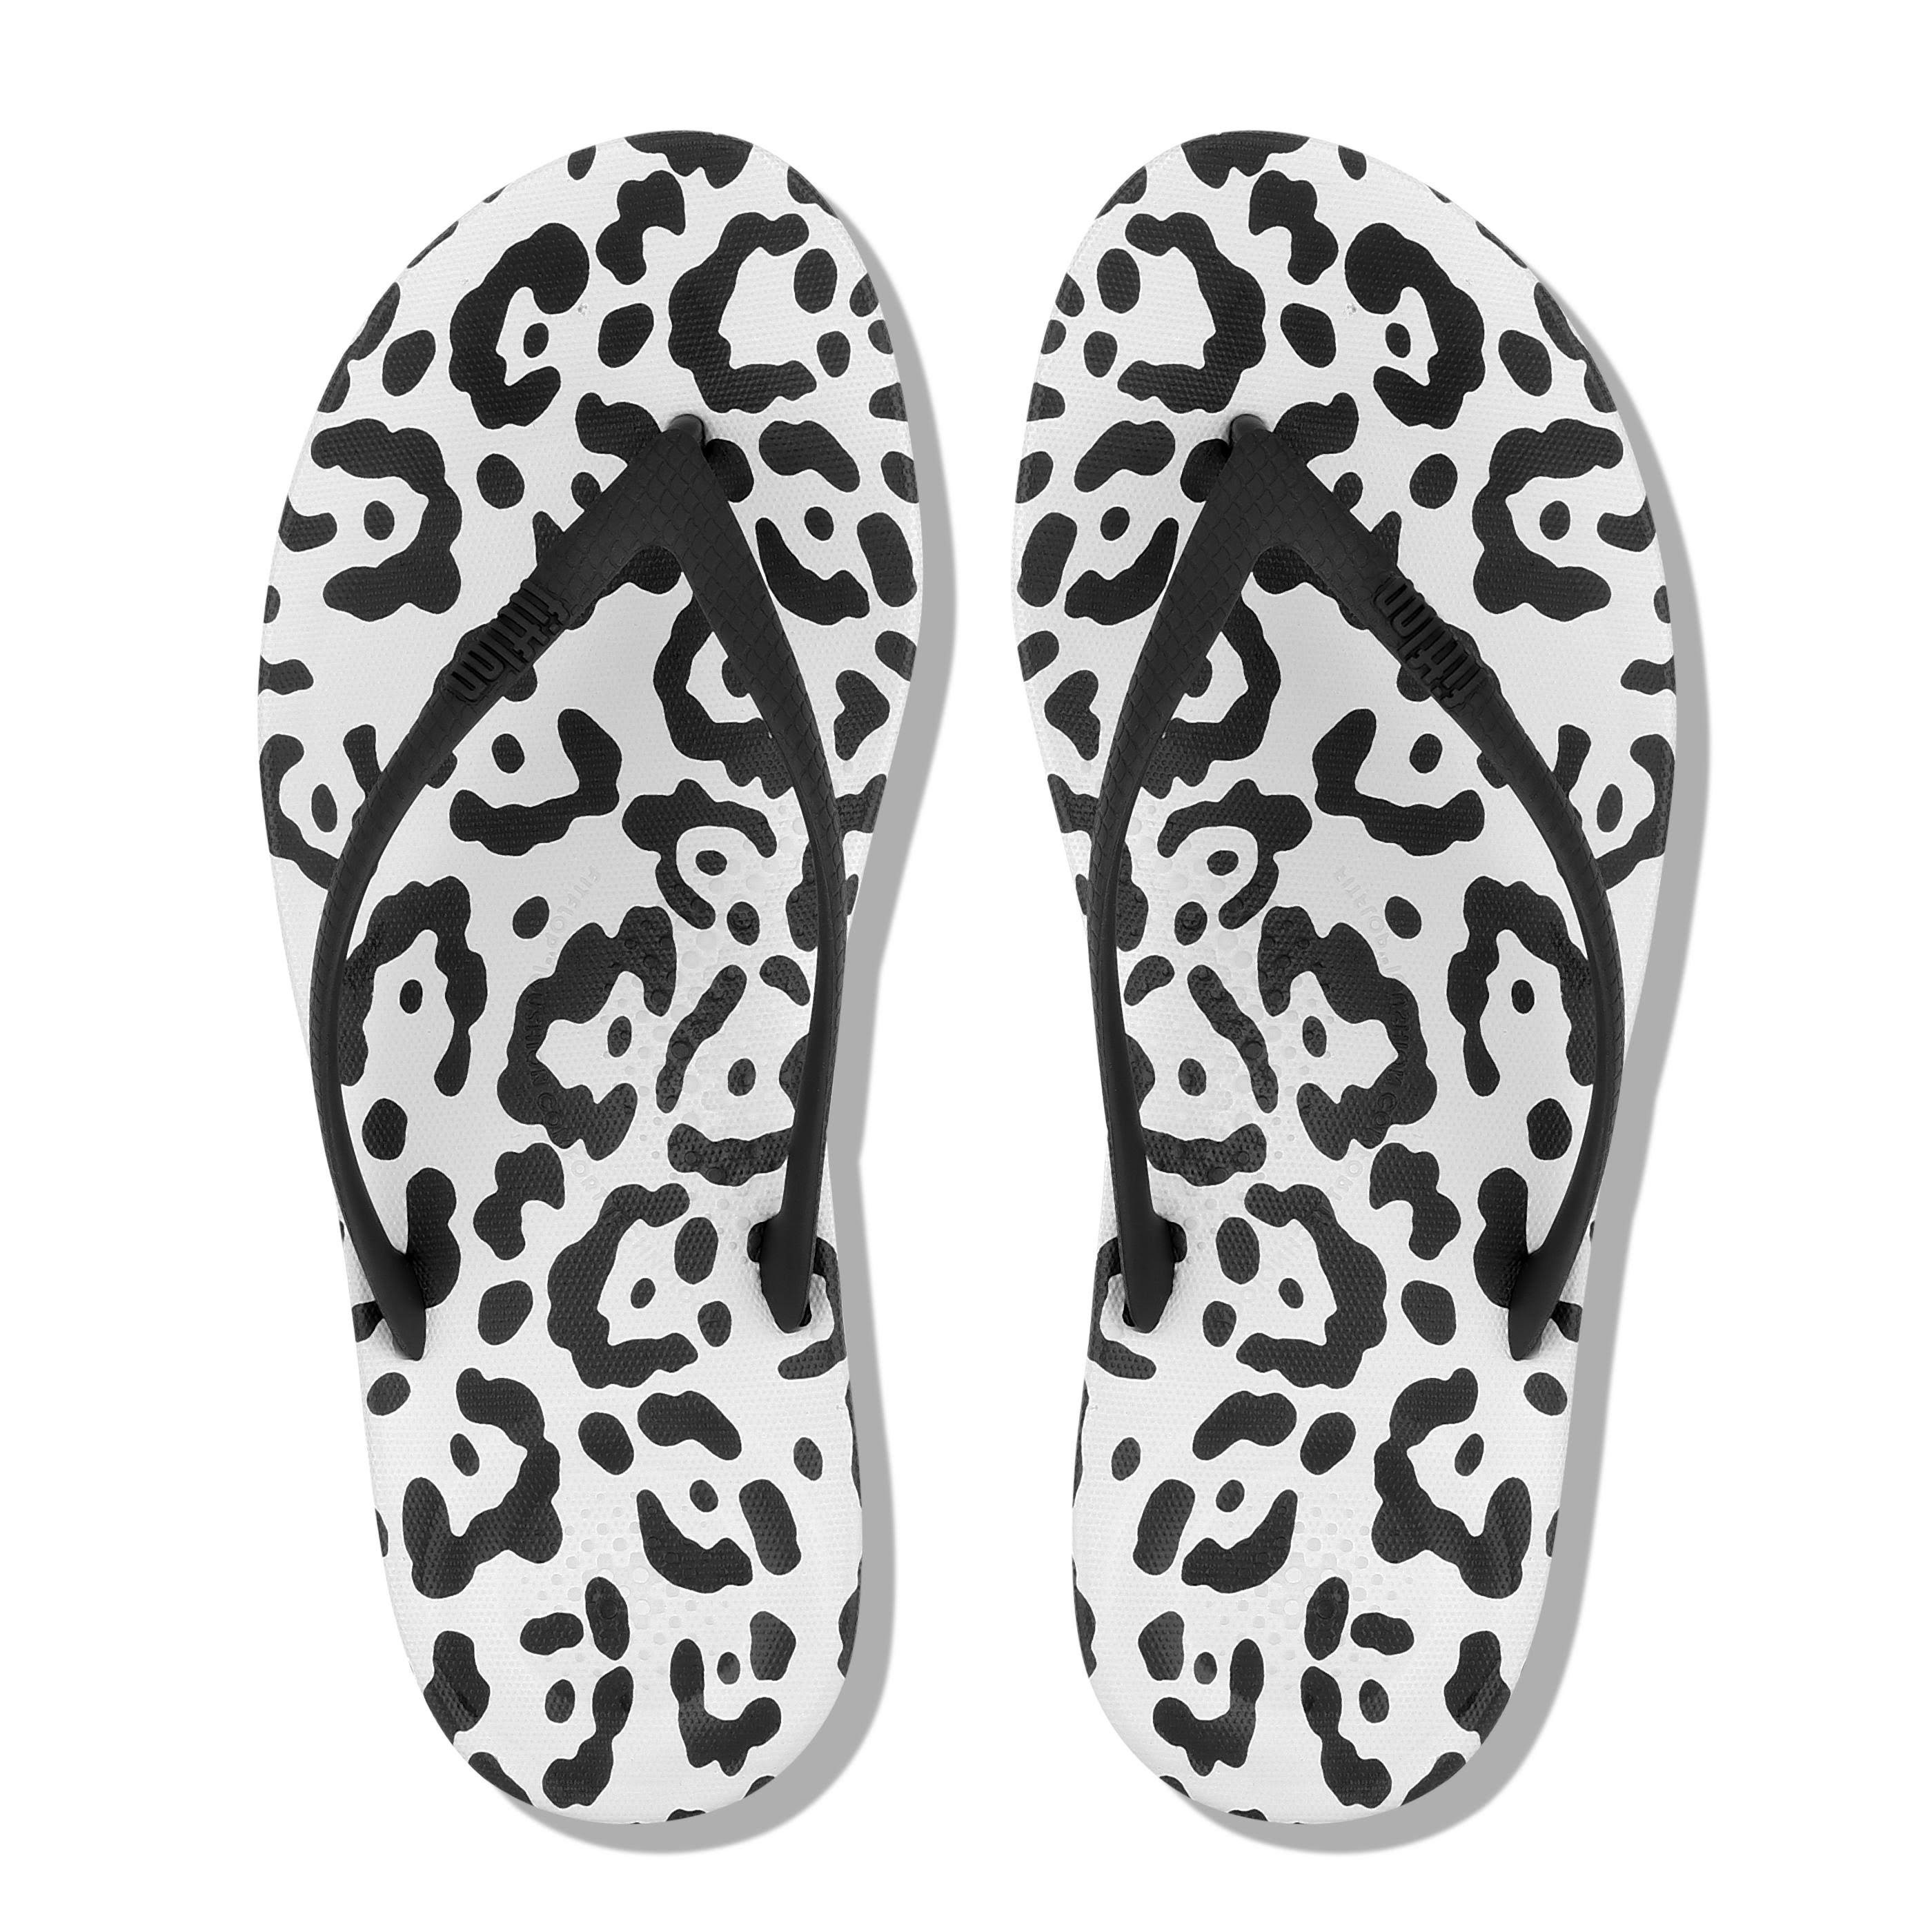 10 Blackmixtan Iqushion Us Fitflop Ergonomic 9HEDe2IYW